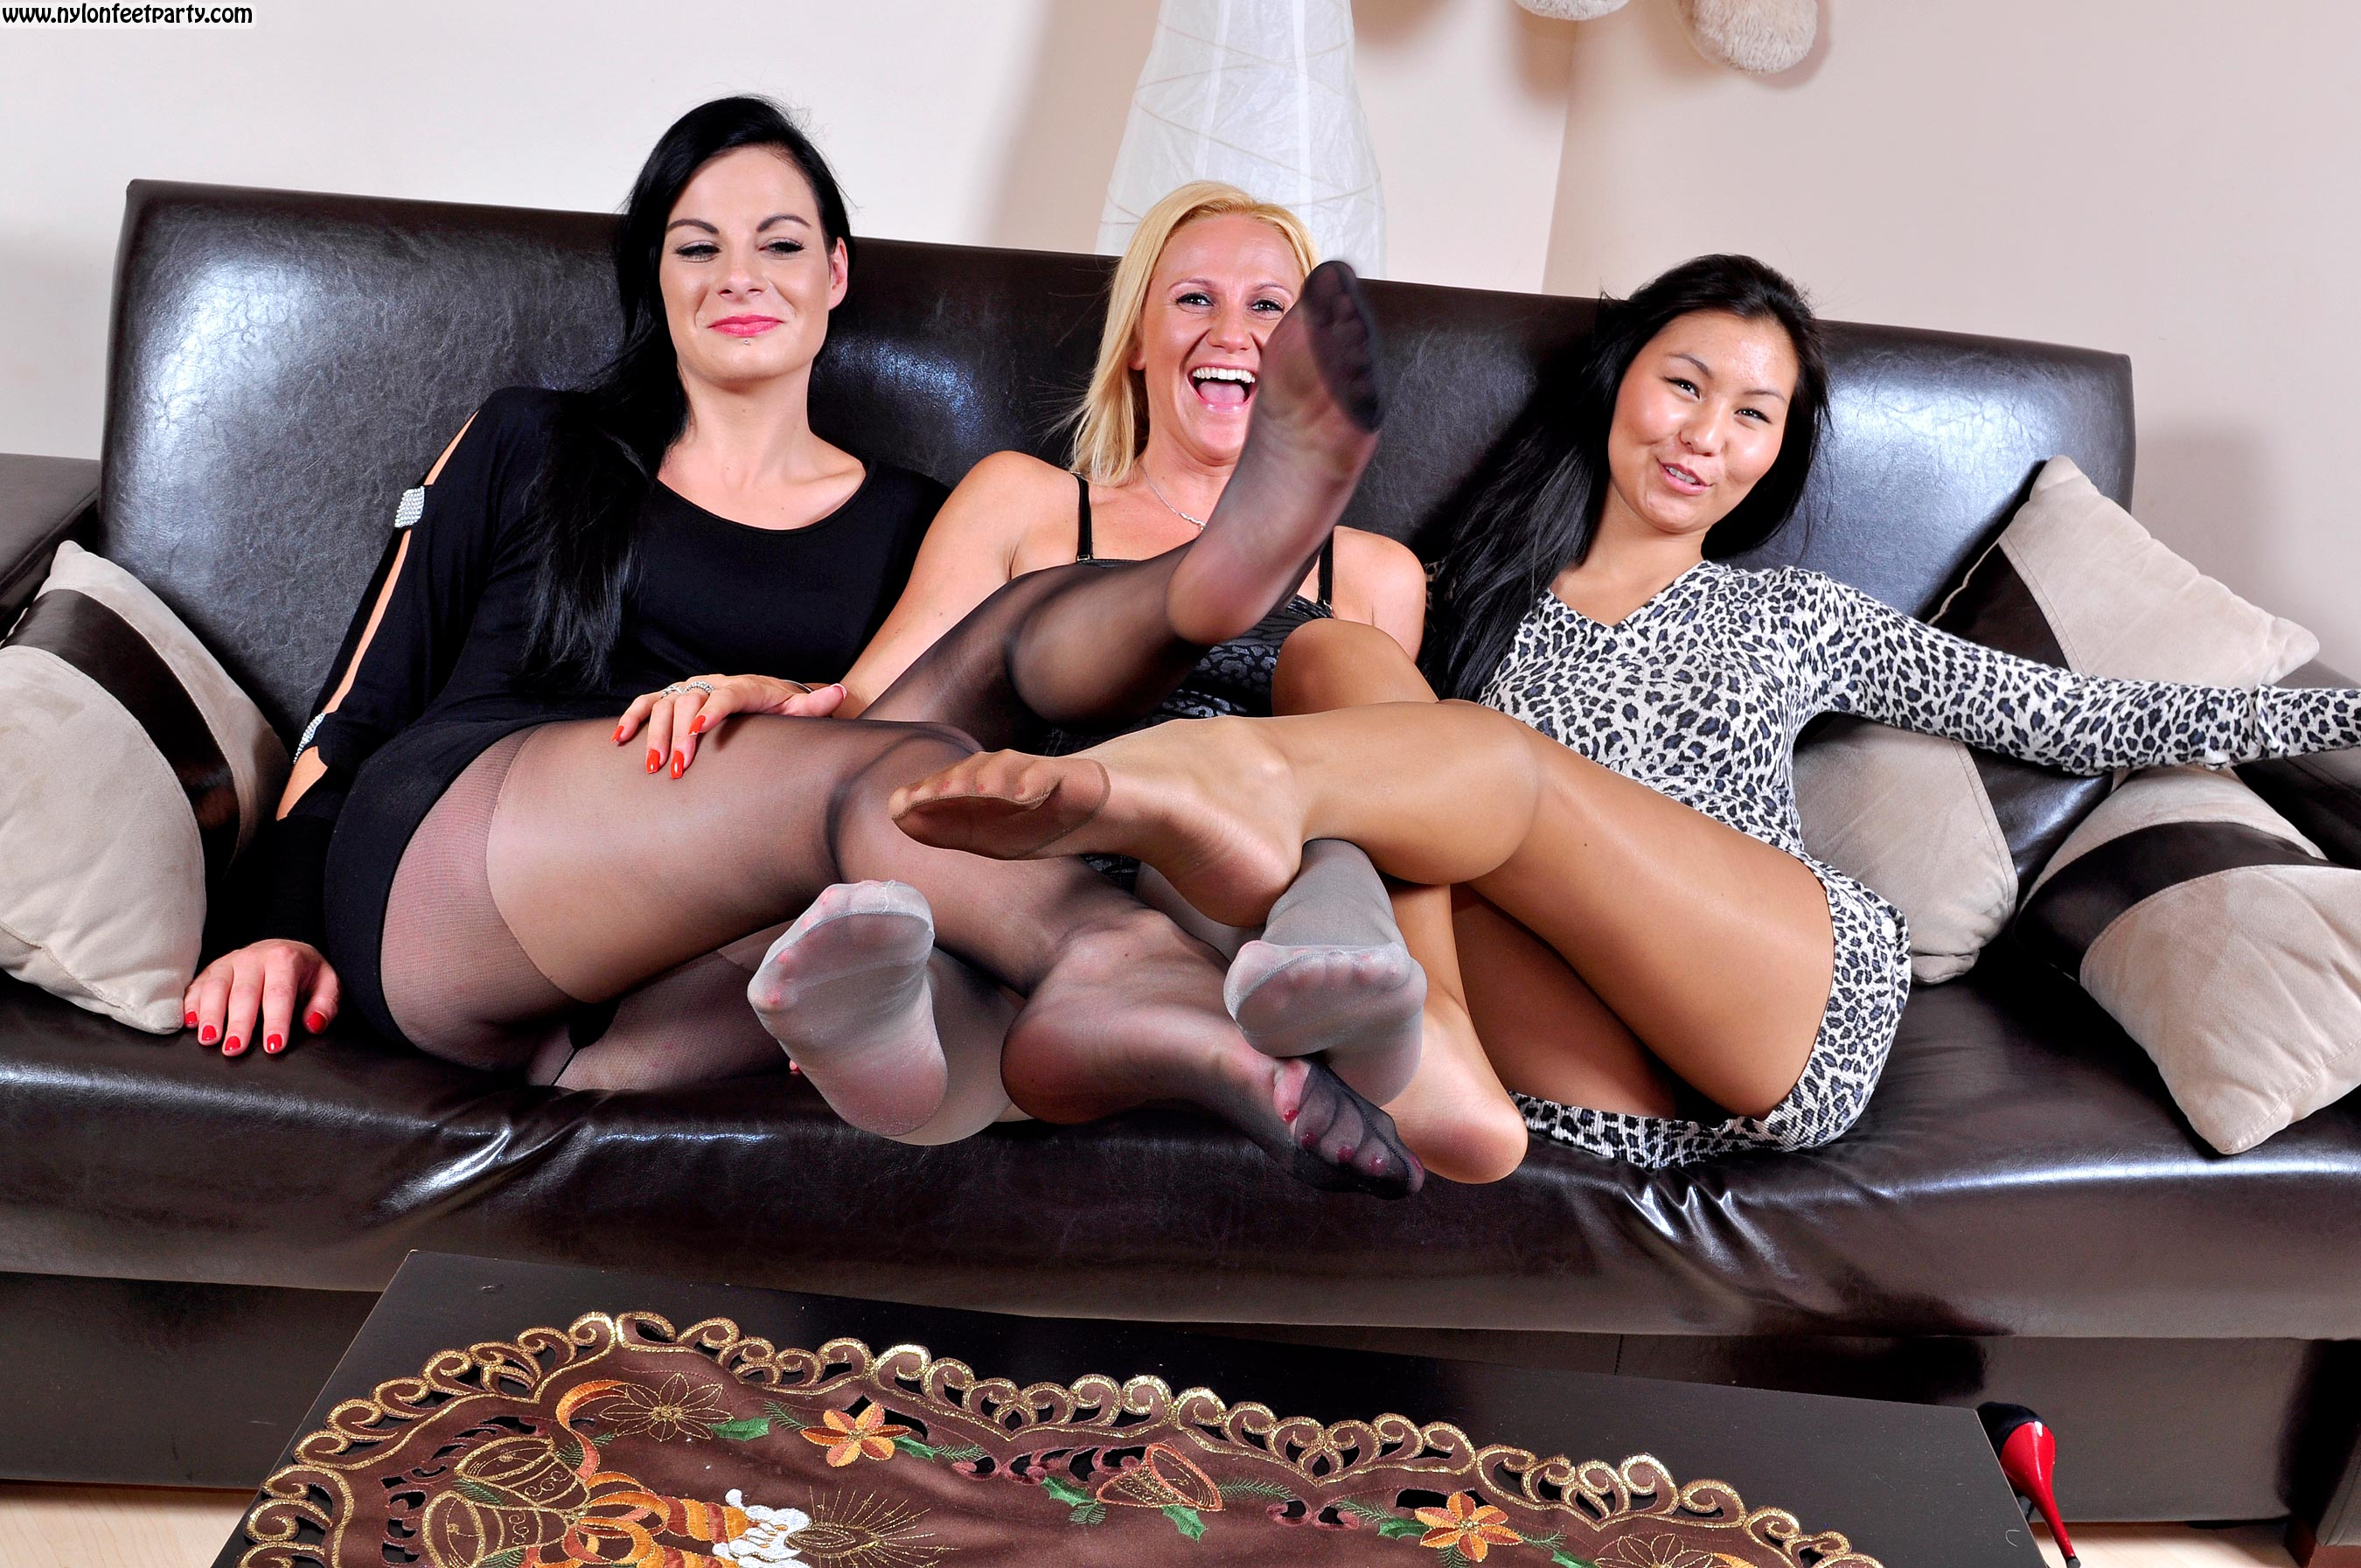 Tickling nylon feet party